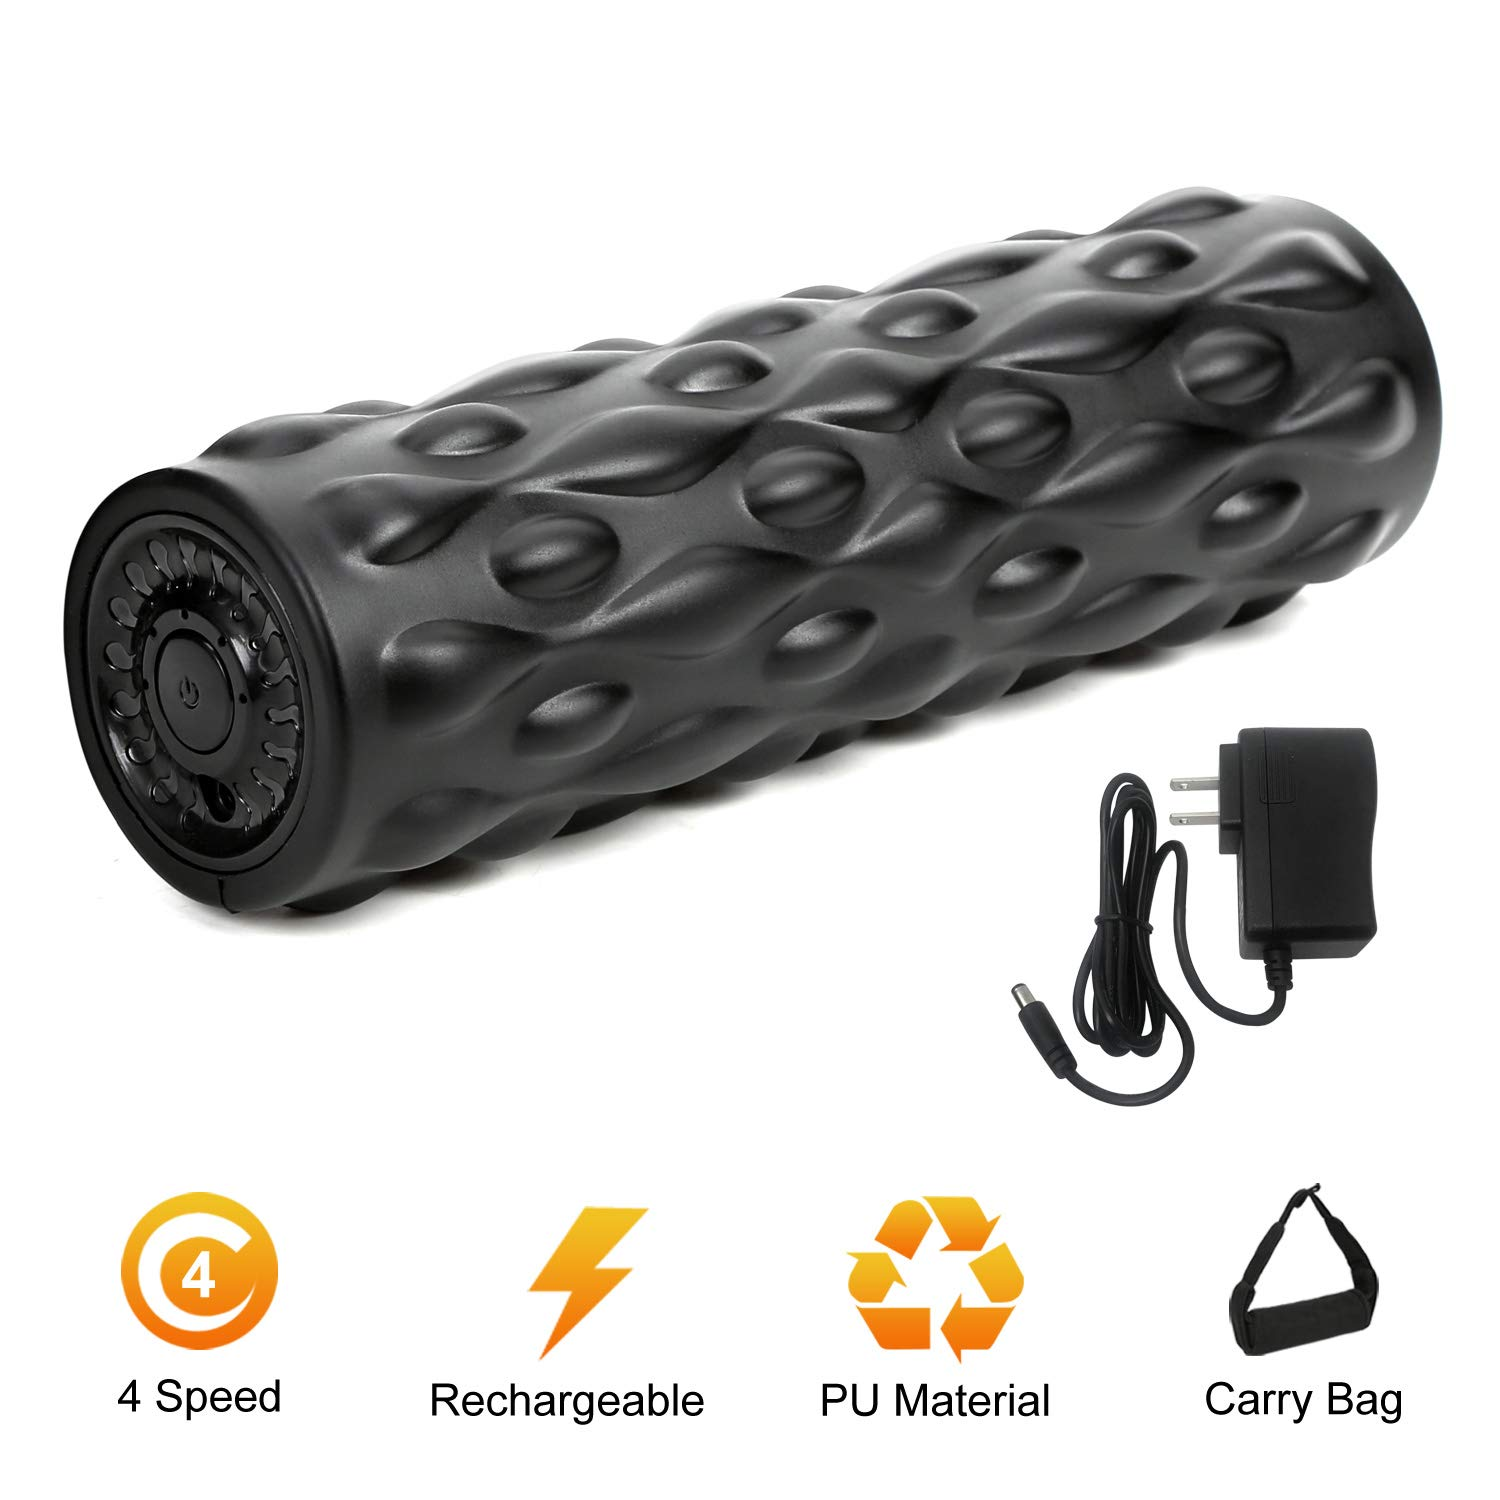 IDEER LIFE Vibrating Foam Roller, 4-Speed Vibrating Foam Roller, High-Intensity Deep Tissue Massager for Muscle Recovery, 12.3 Rechargeable Electric Massager Myofascial Release with Carry Bag. Black